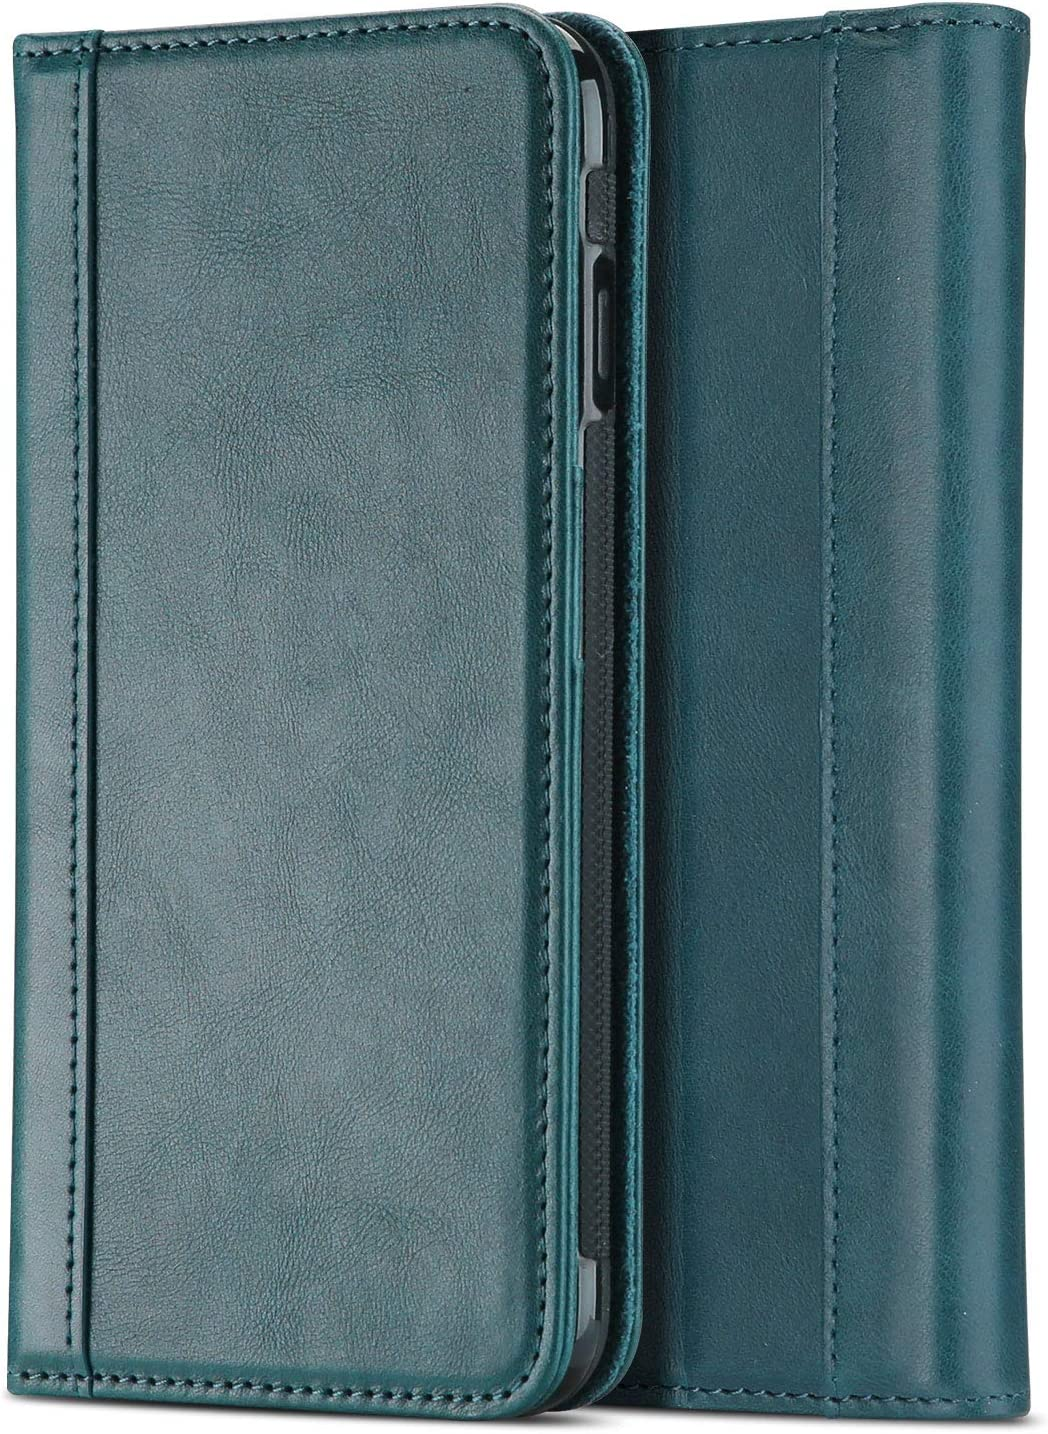 ProCase iPhone 8 Plus 7 Plus Genuine Leather Case, Wallet Folding Flip Case with Kickstand Card Slots Magnetic Closure Protective Cover for Apple iPhone 8 Plus/iPhone 7 Plus -Teal